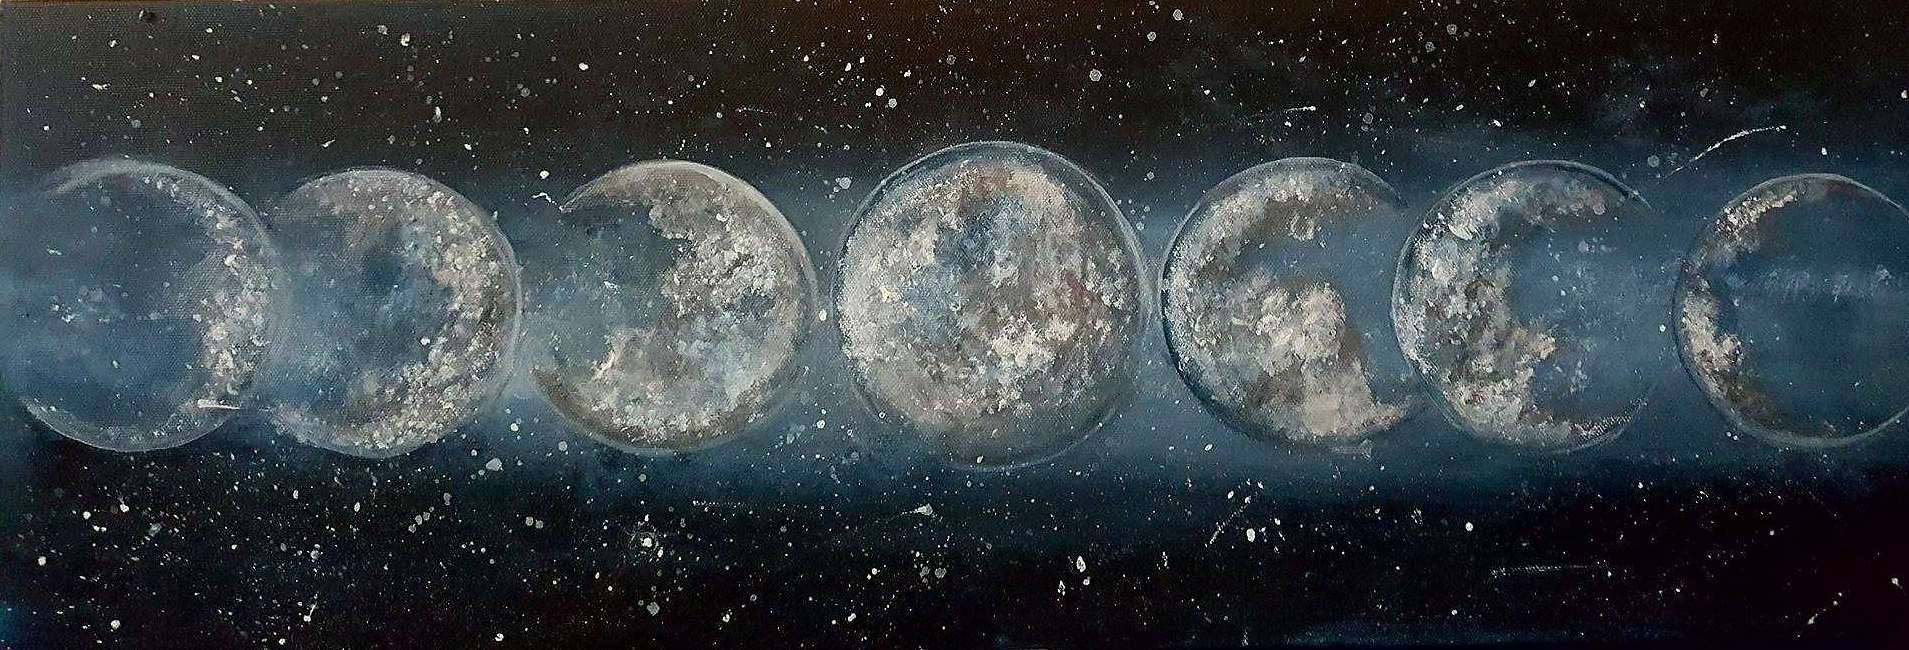 Moondancing - painted on 10x30 canvas